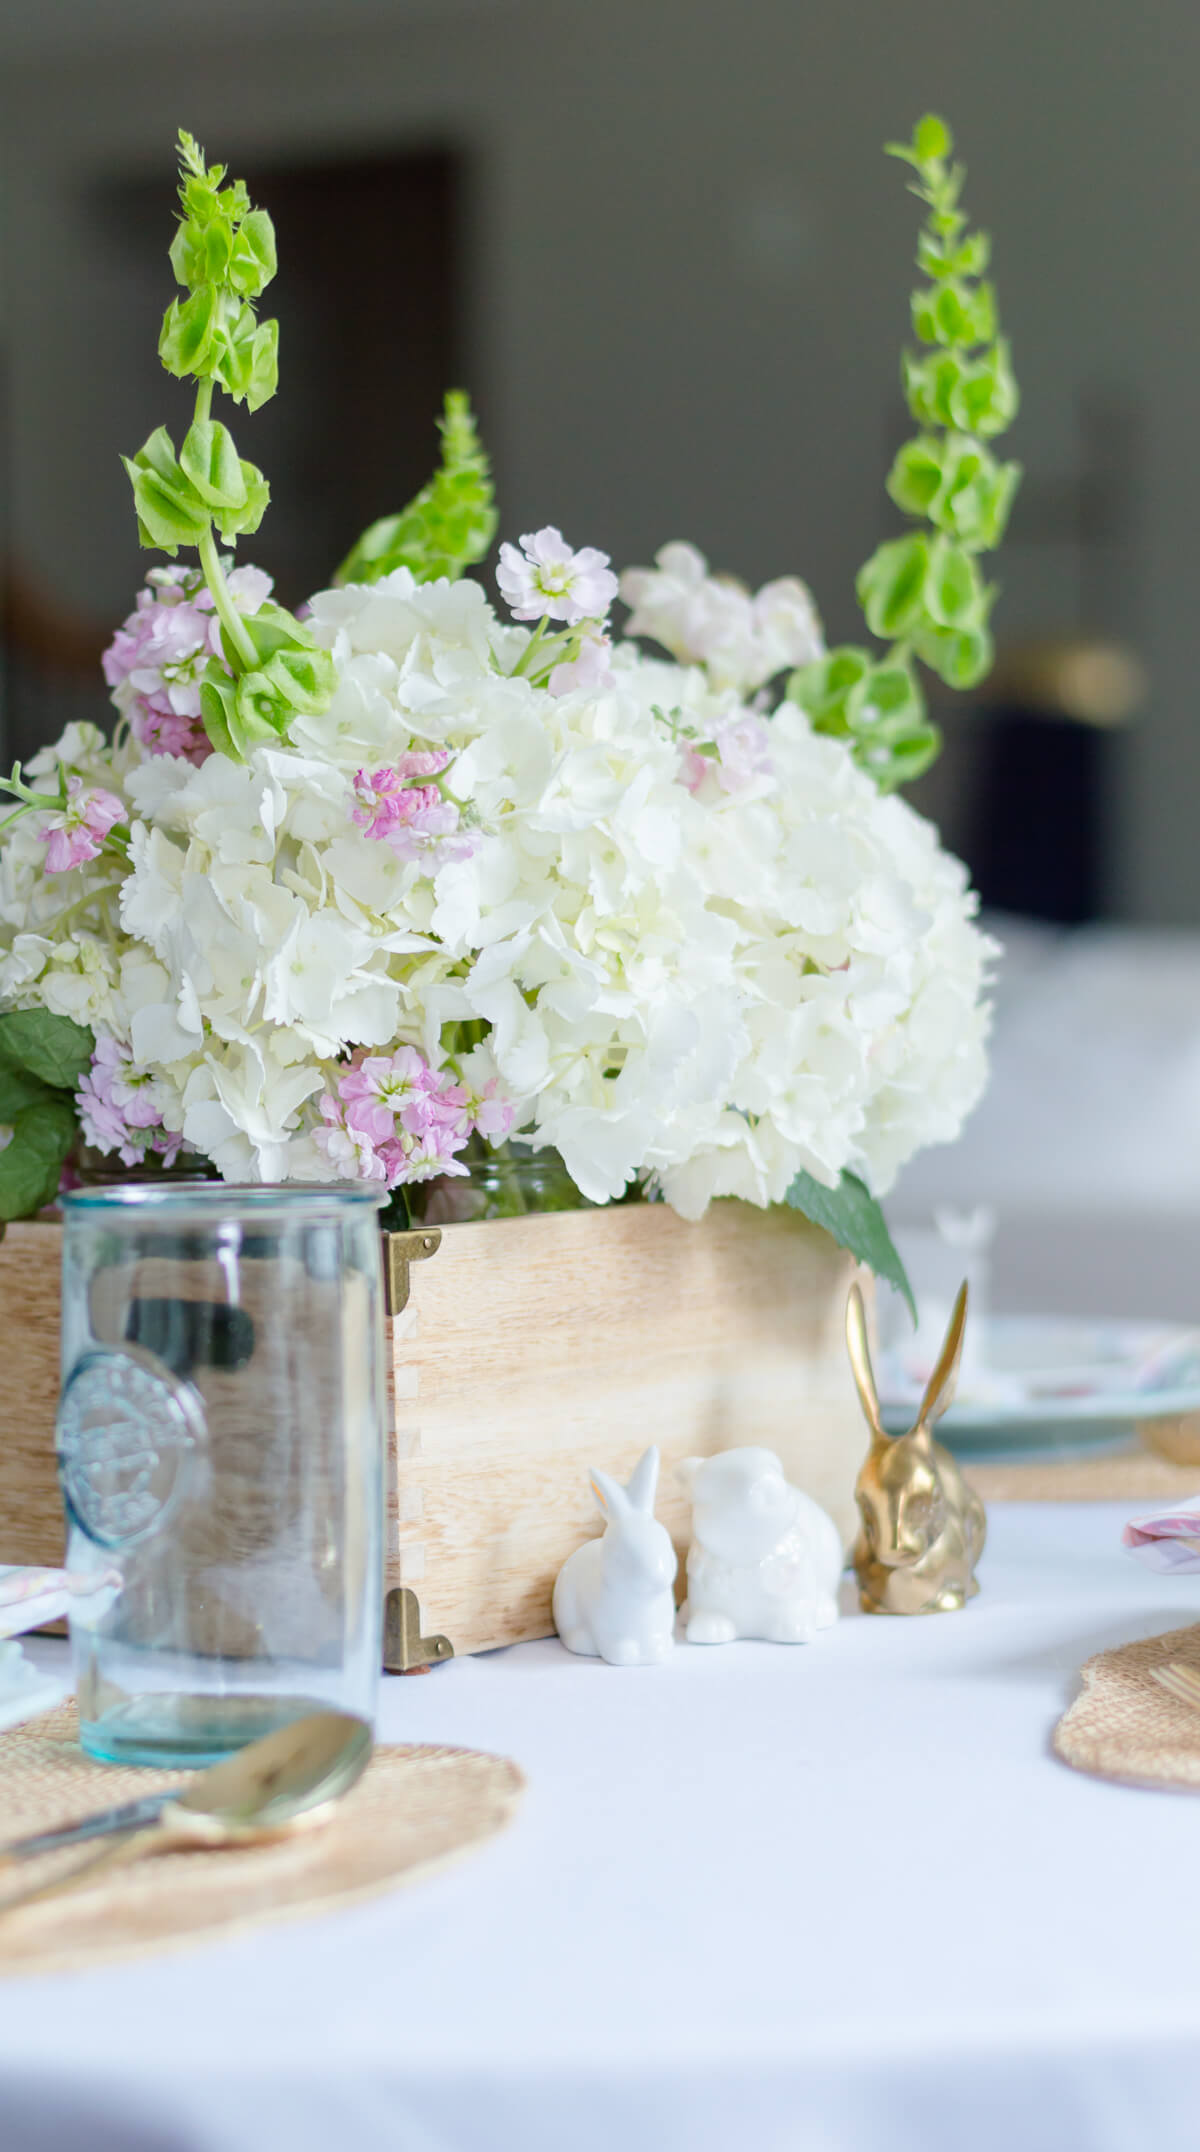 Hydrangea spring flower arrangement centerpiece